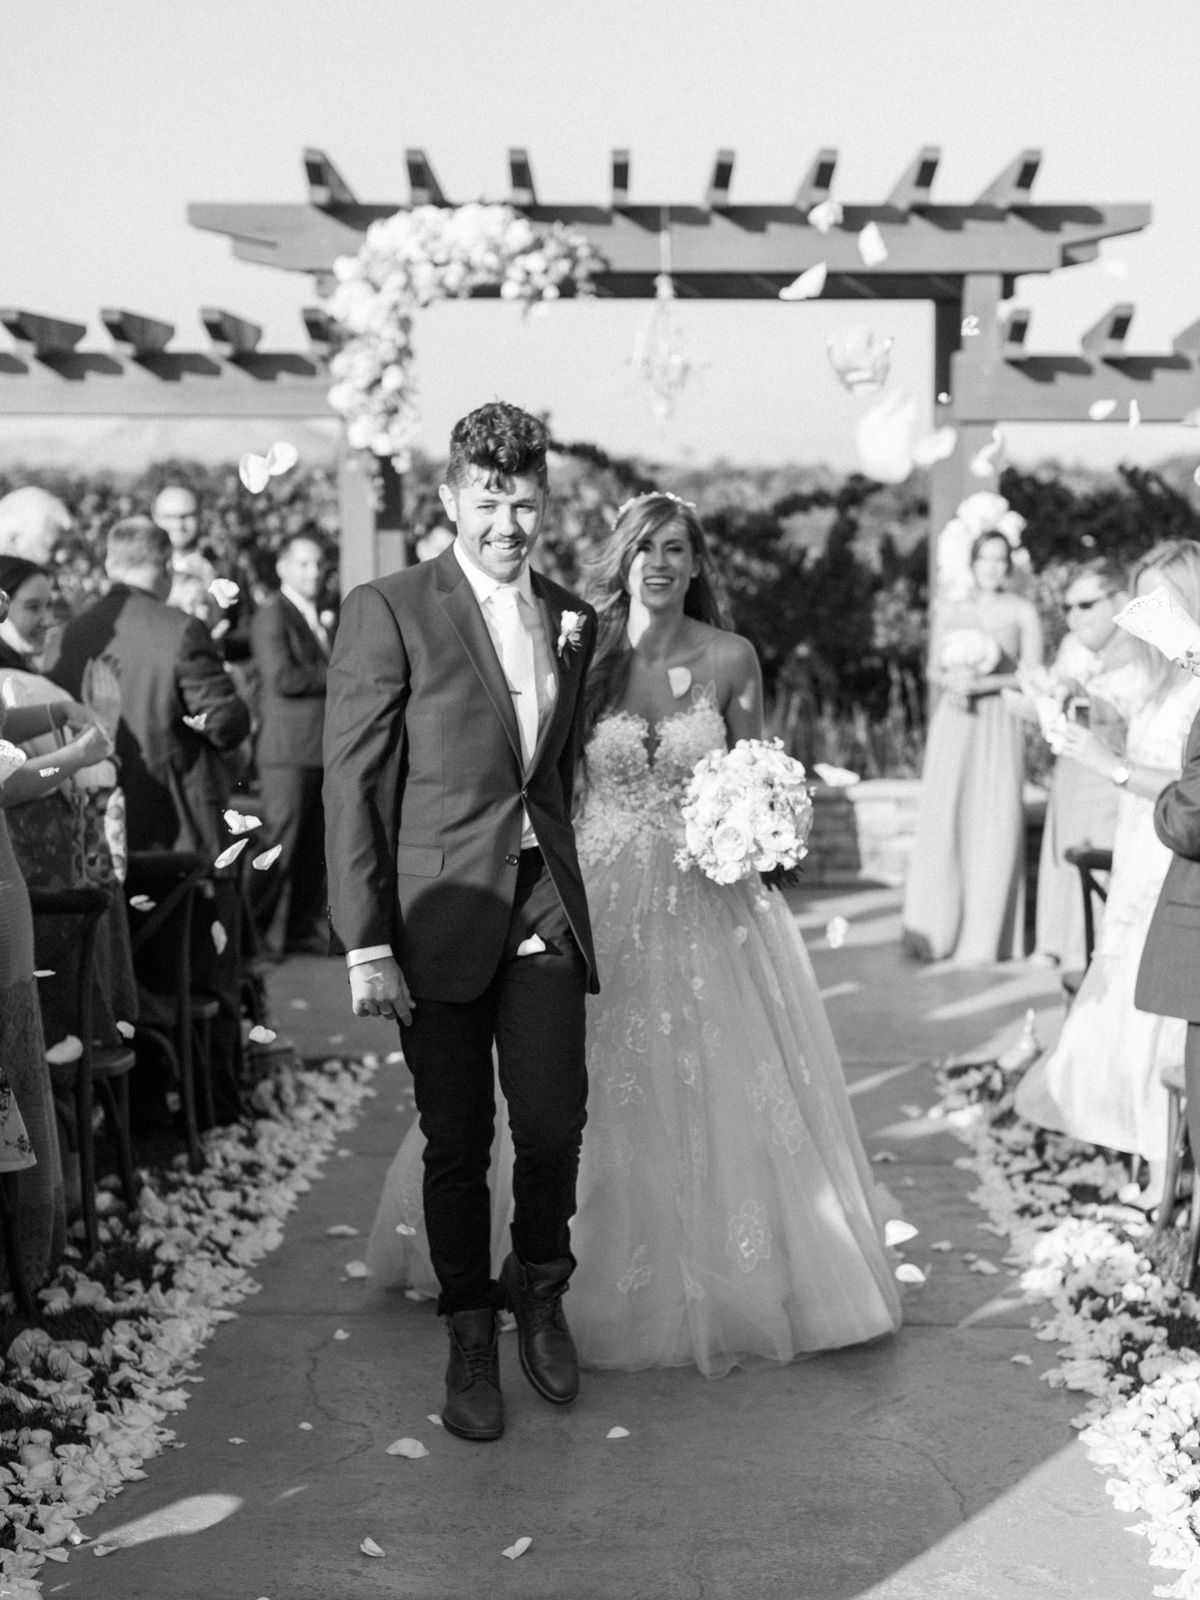 Bride & groom walking down the aisle, showered by flower petals! What a great exit. Harrison & Jocelyne's gorgeous Temecula wedding at Wiens Family Cellars captured by Betsy & John Photography